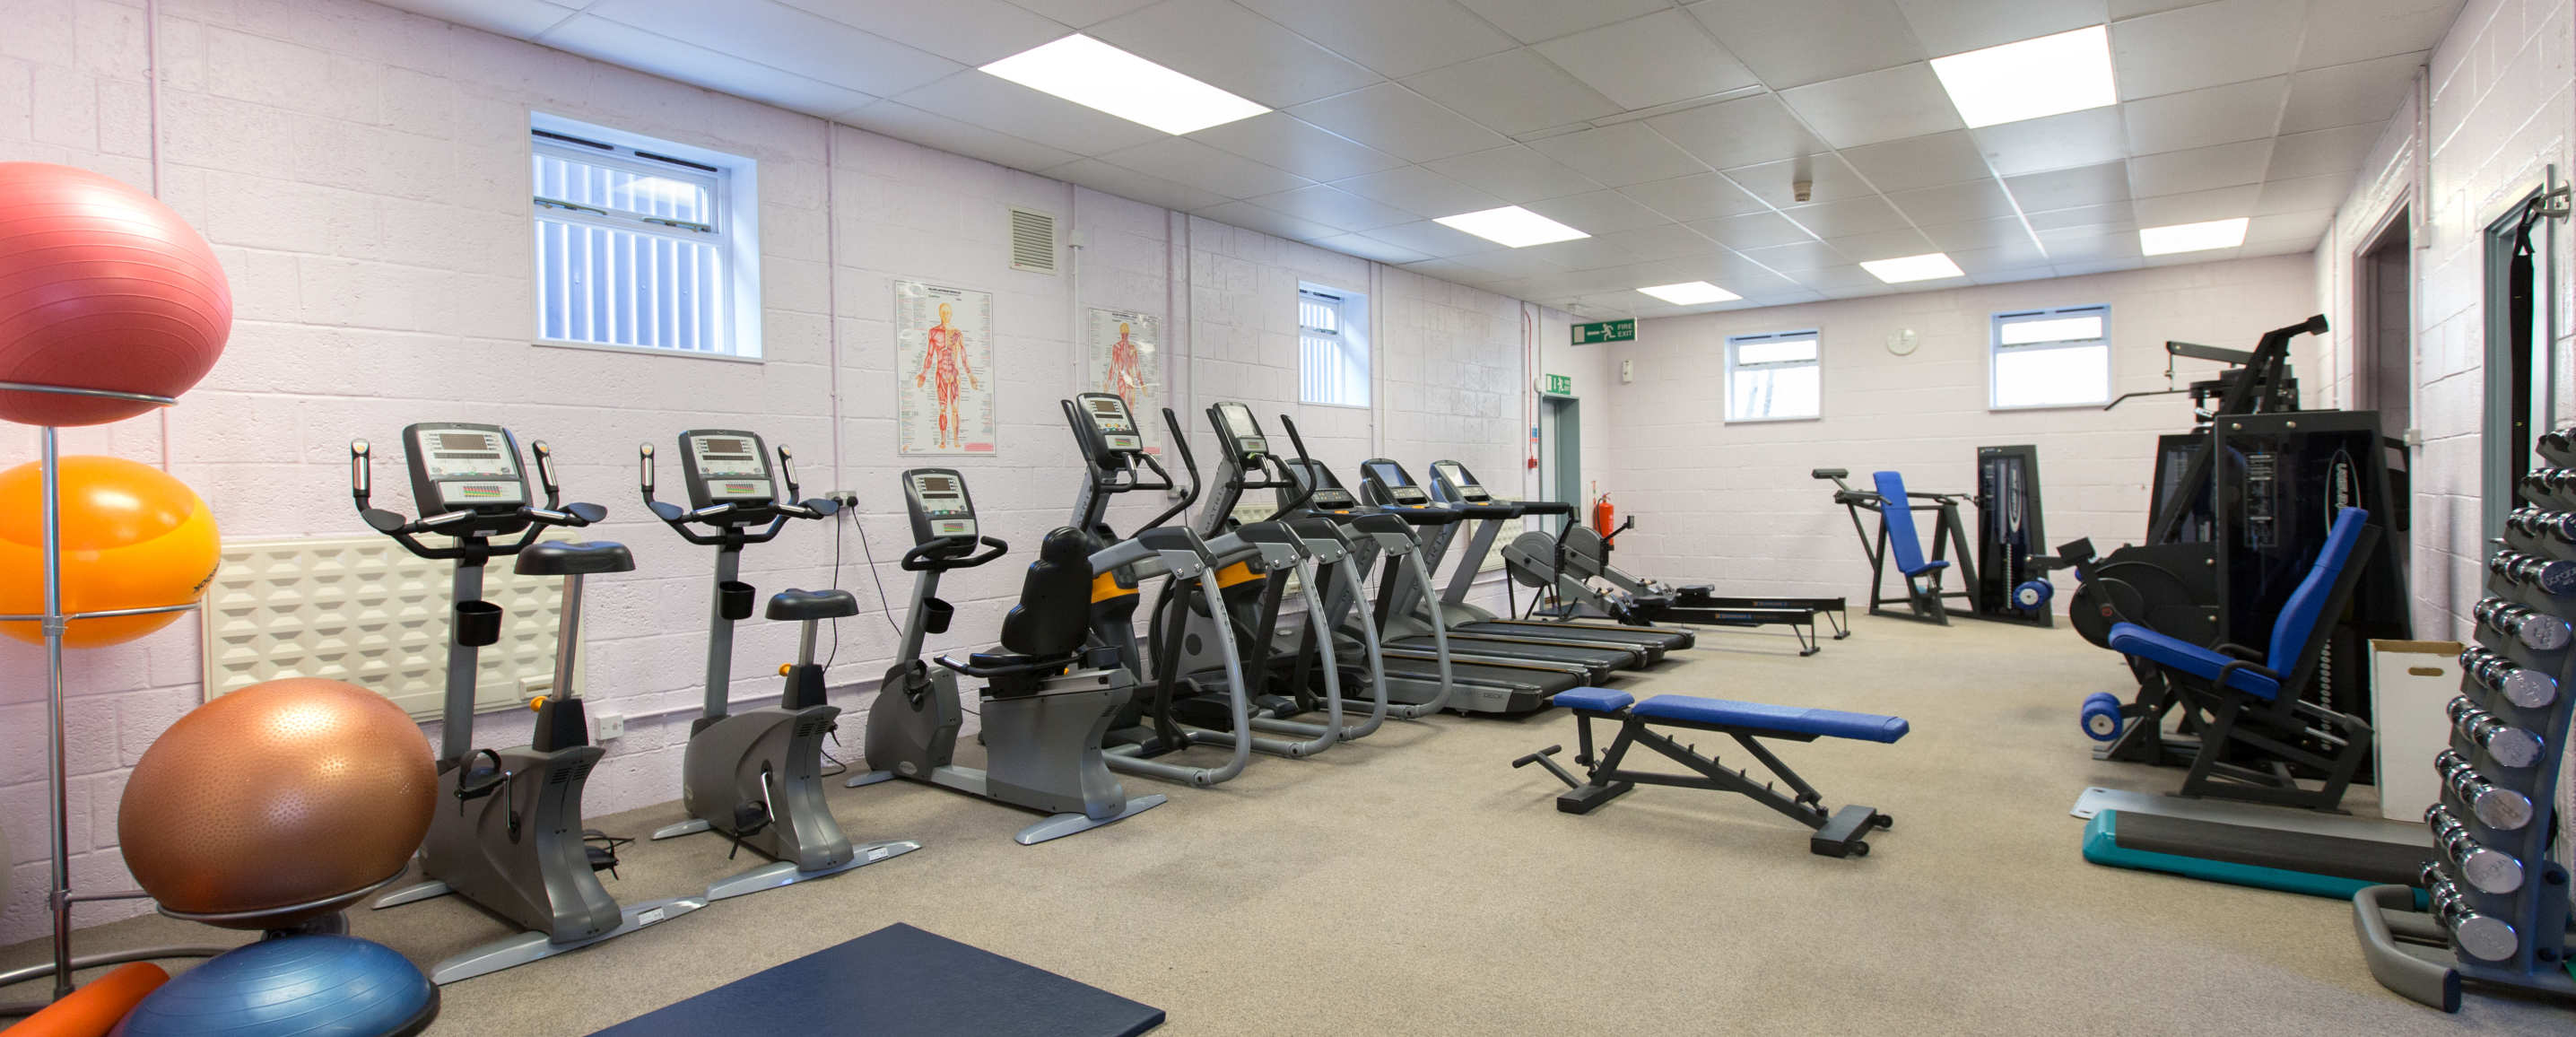 Silwood park not based in london study imperial college london - University of london accommodation office ...